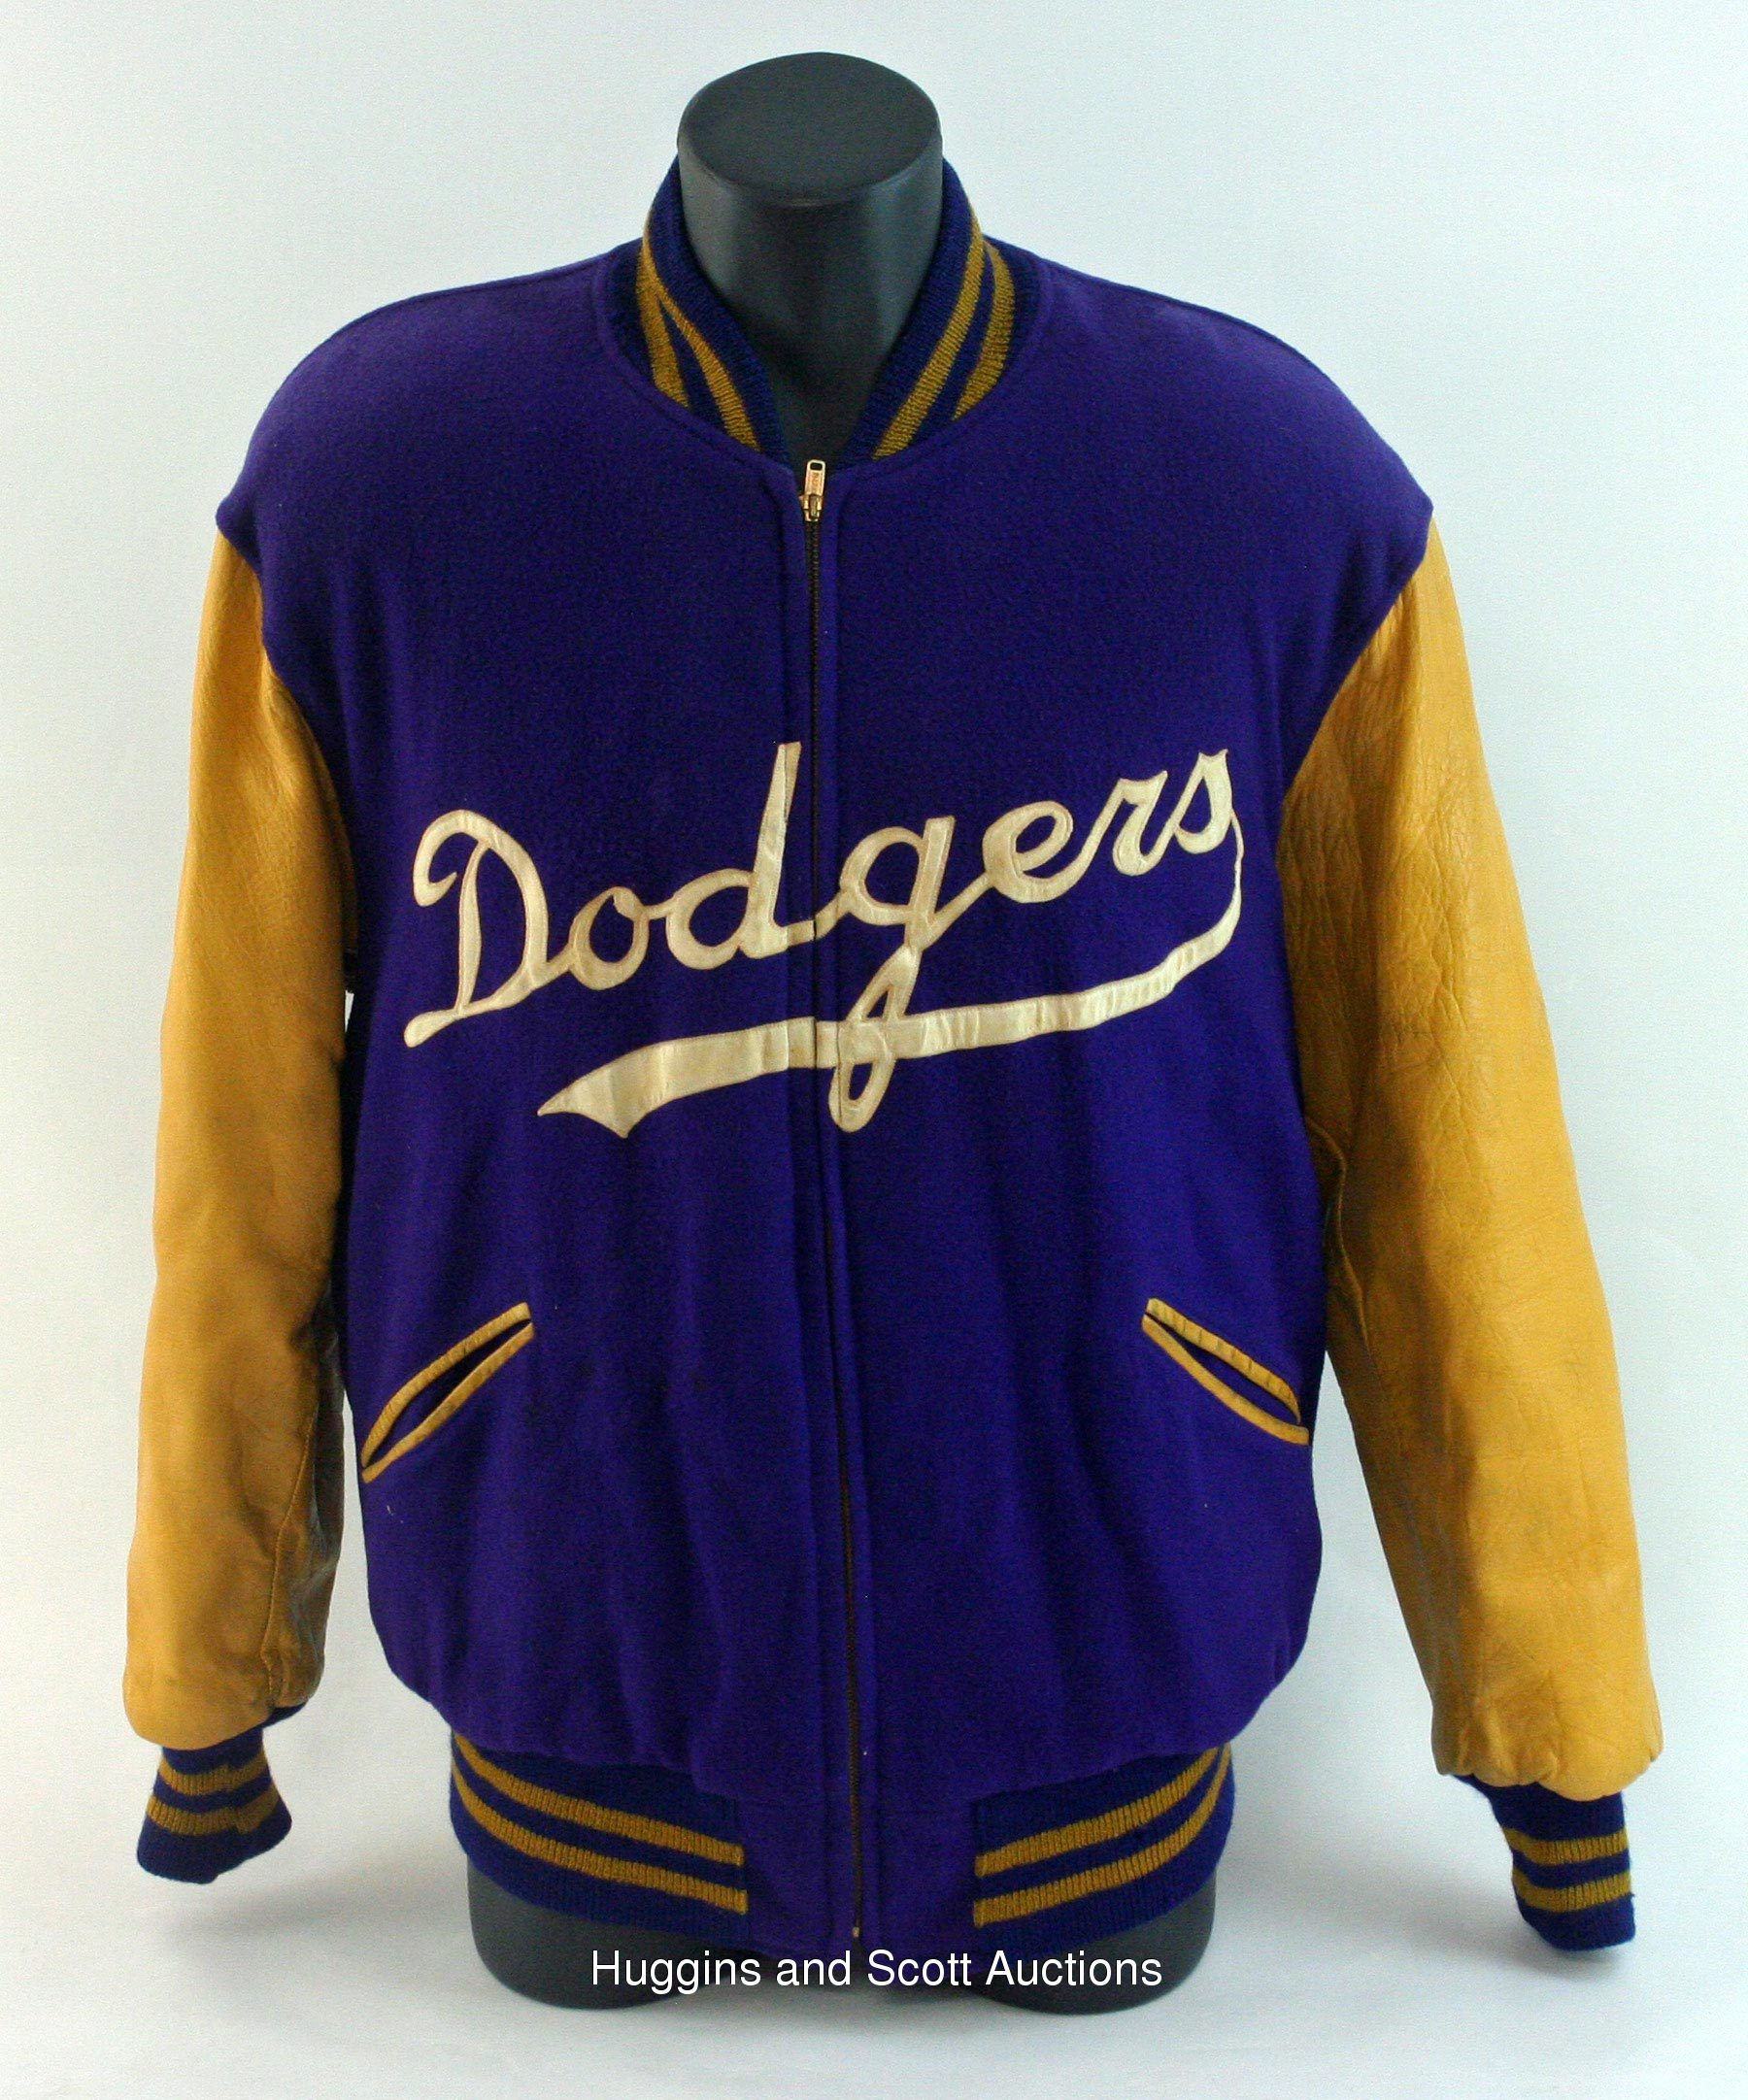 1950s Brooklyn Dodgers Game Worn Warm Up Jacket